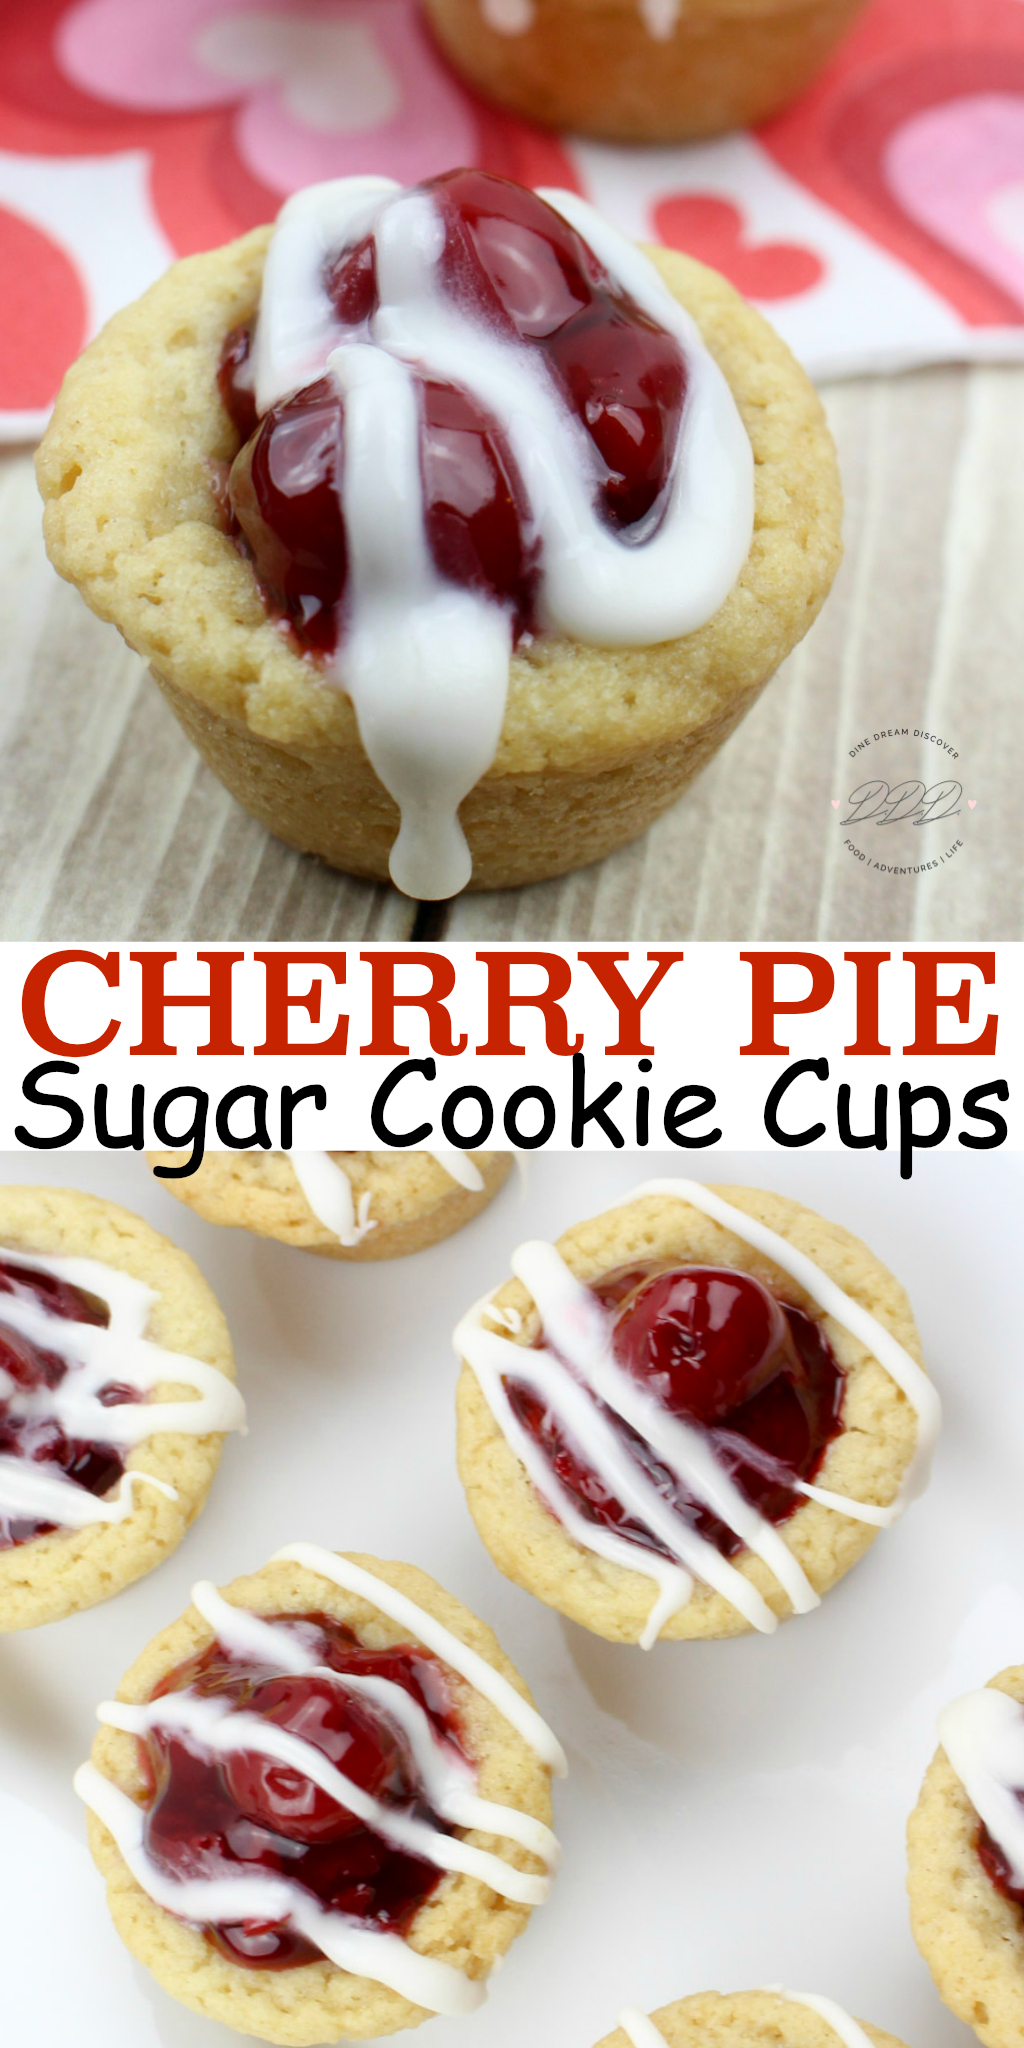 The Cherry Pie Cookie Cups recipe is my favorite cherry recipe. Cherry Pie Cookies are like mini cherry pies. Cherry sugar cookie cups are filled with cherry pie filling.